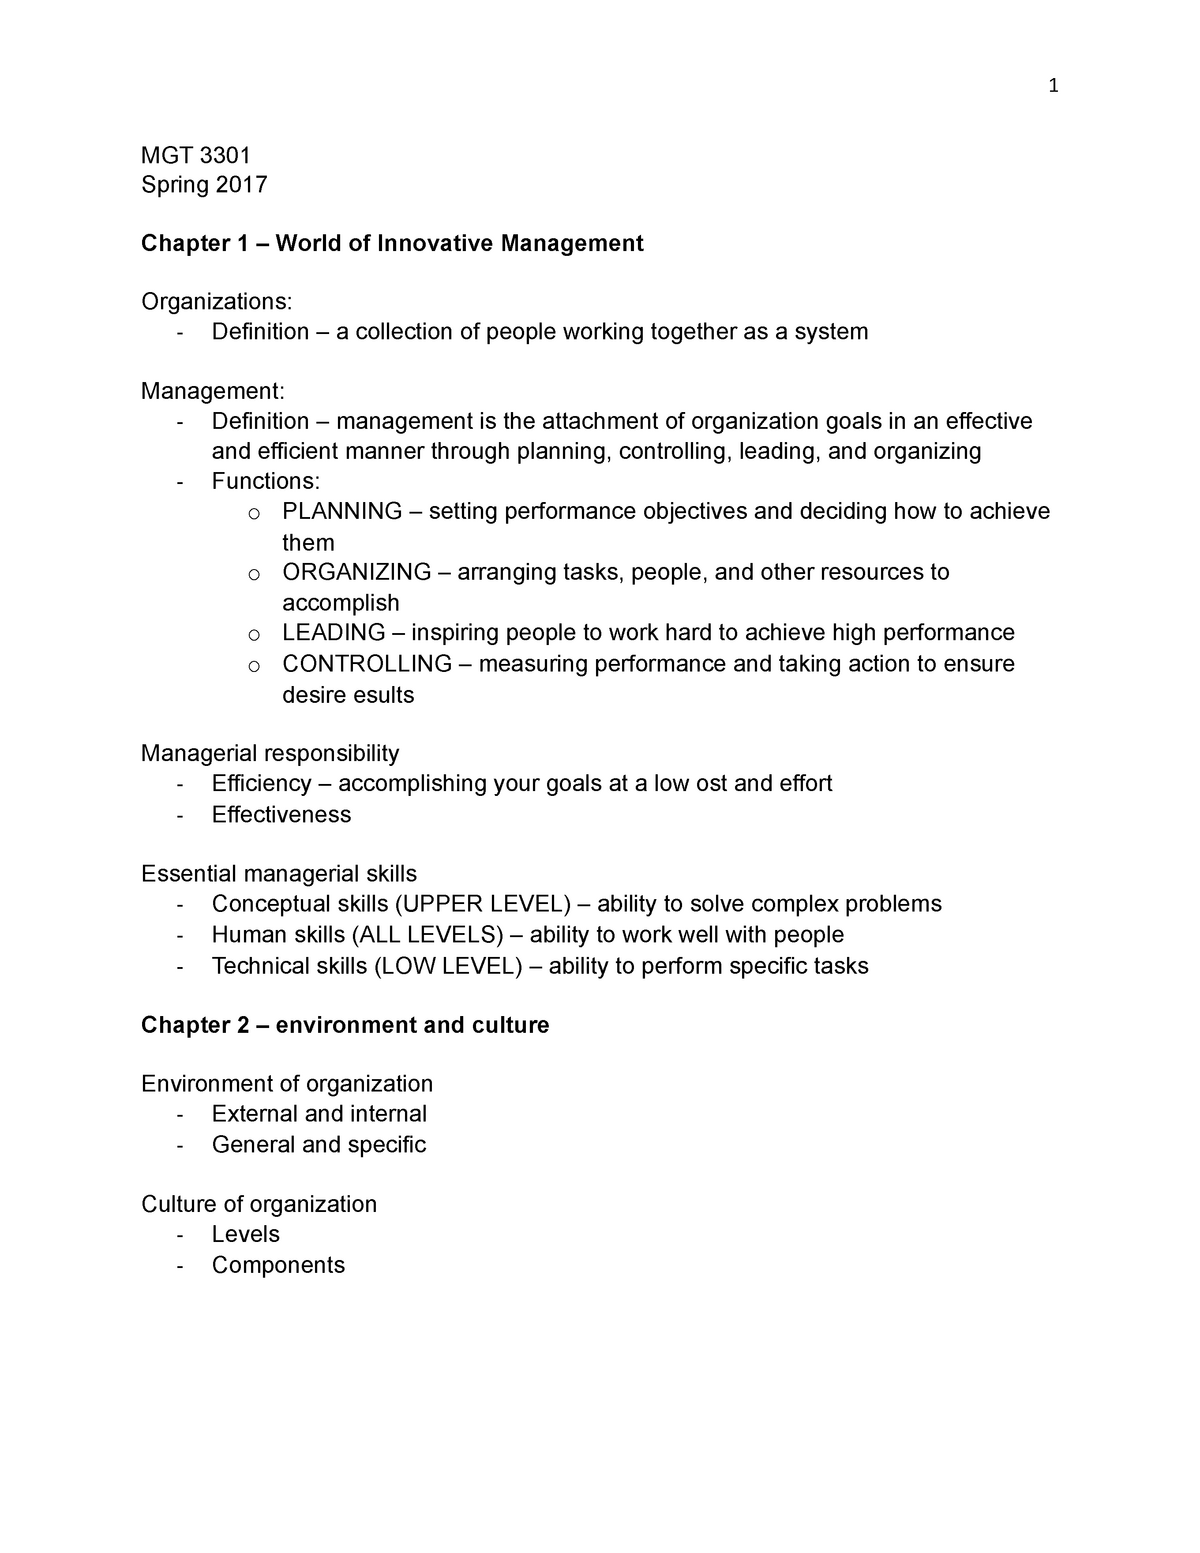 MGT 3301 chapter 1-5 notes - MIS 3301 : Systems Analysis and Design